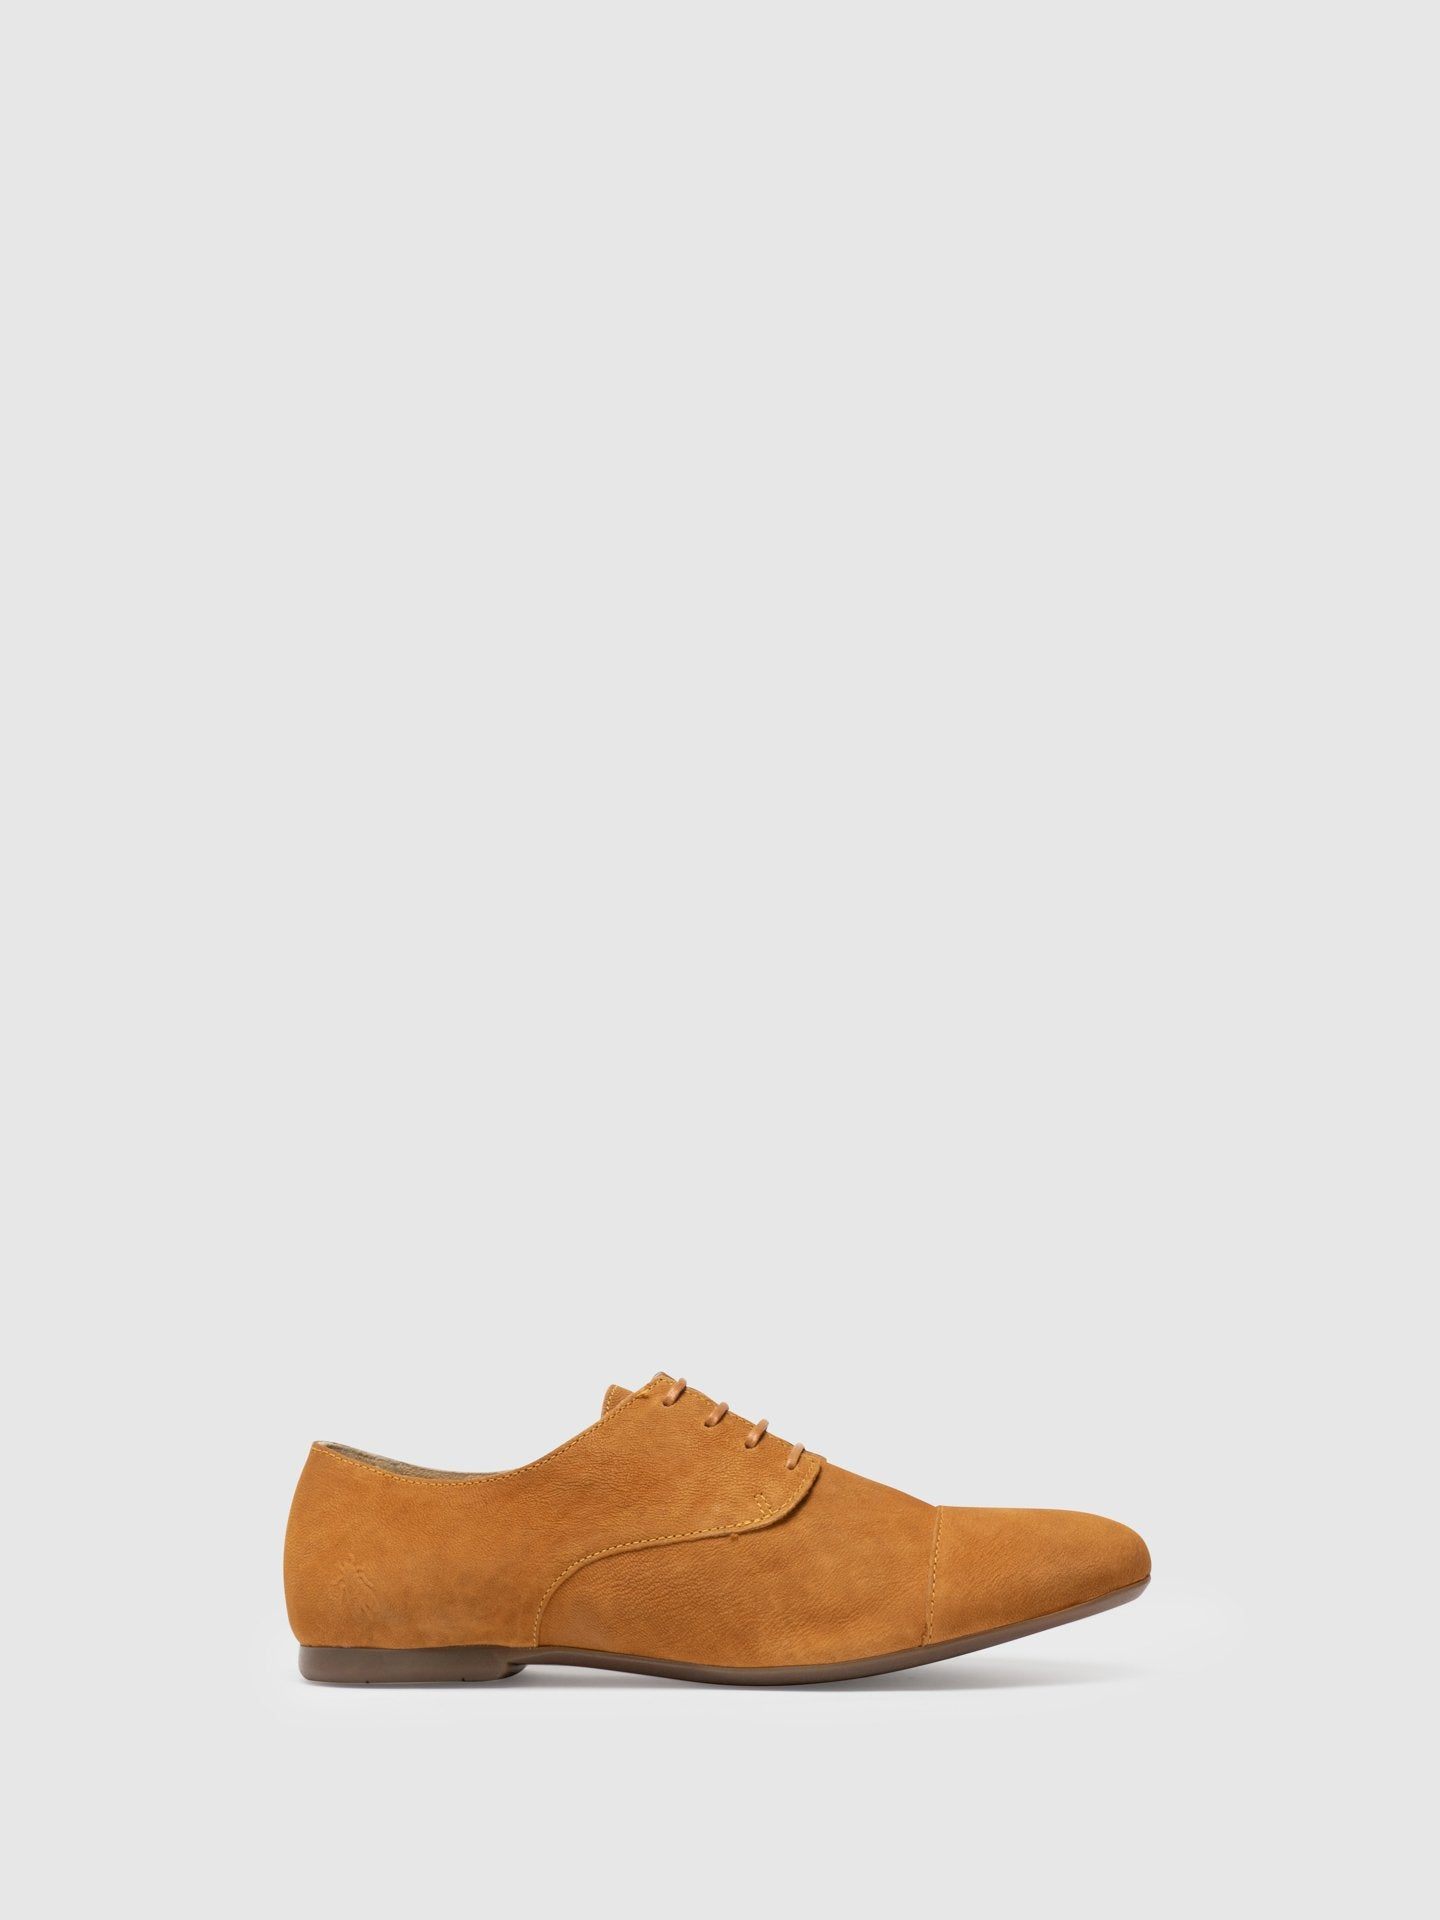 Fly London Yellow Derby Shoes